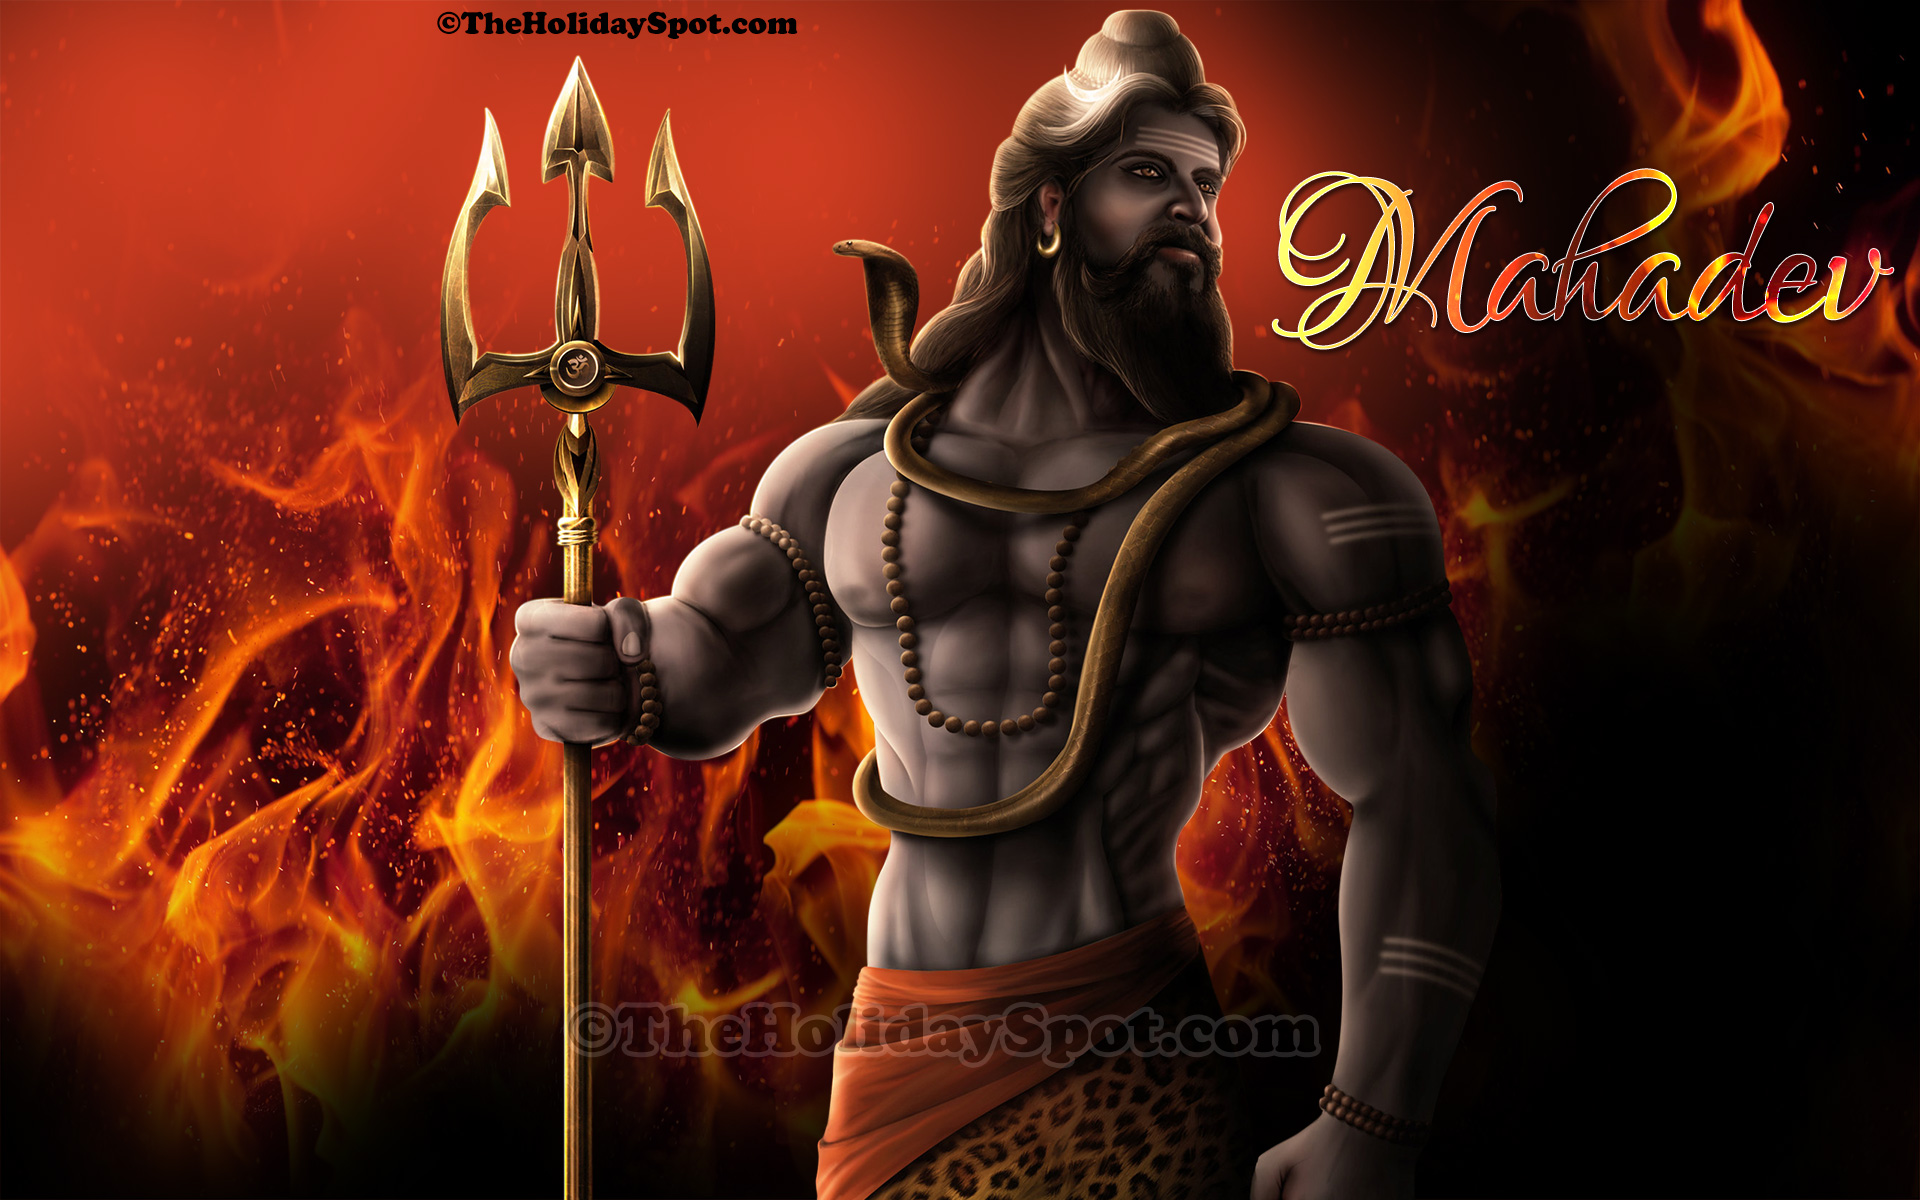 Related Keywords & Suggestions for Mahadev Wallpaper